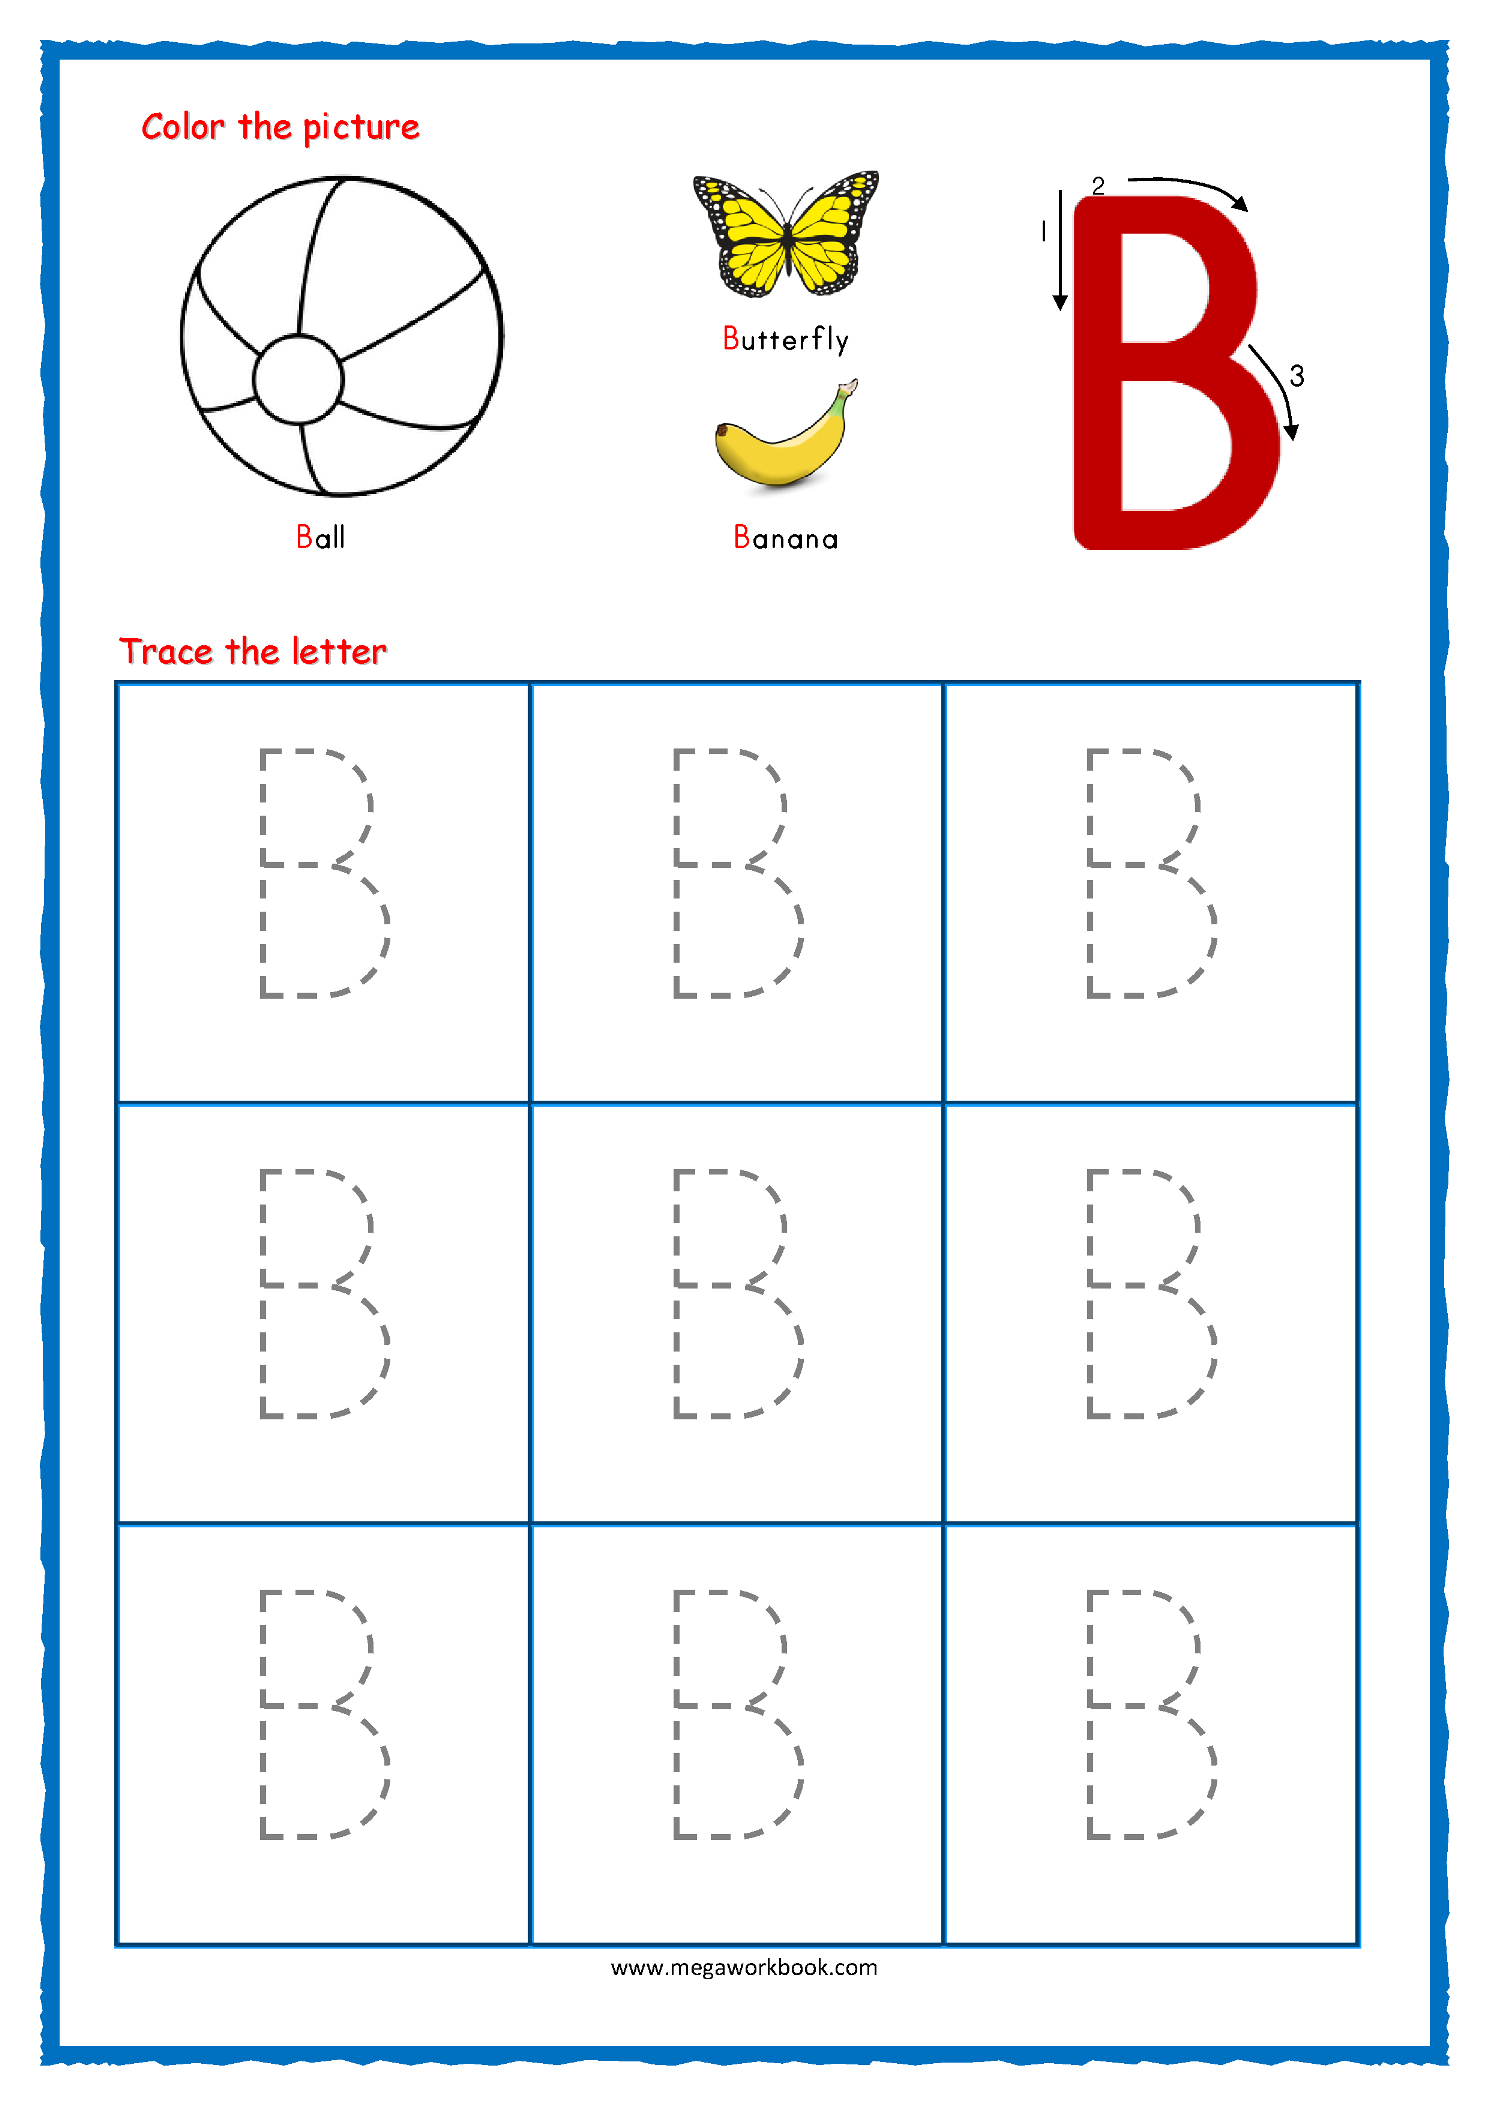 Tracing Letters - Alphabet Tracing - Capital Letters for Pre K Alphabet Tracing Worksheets